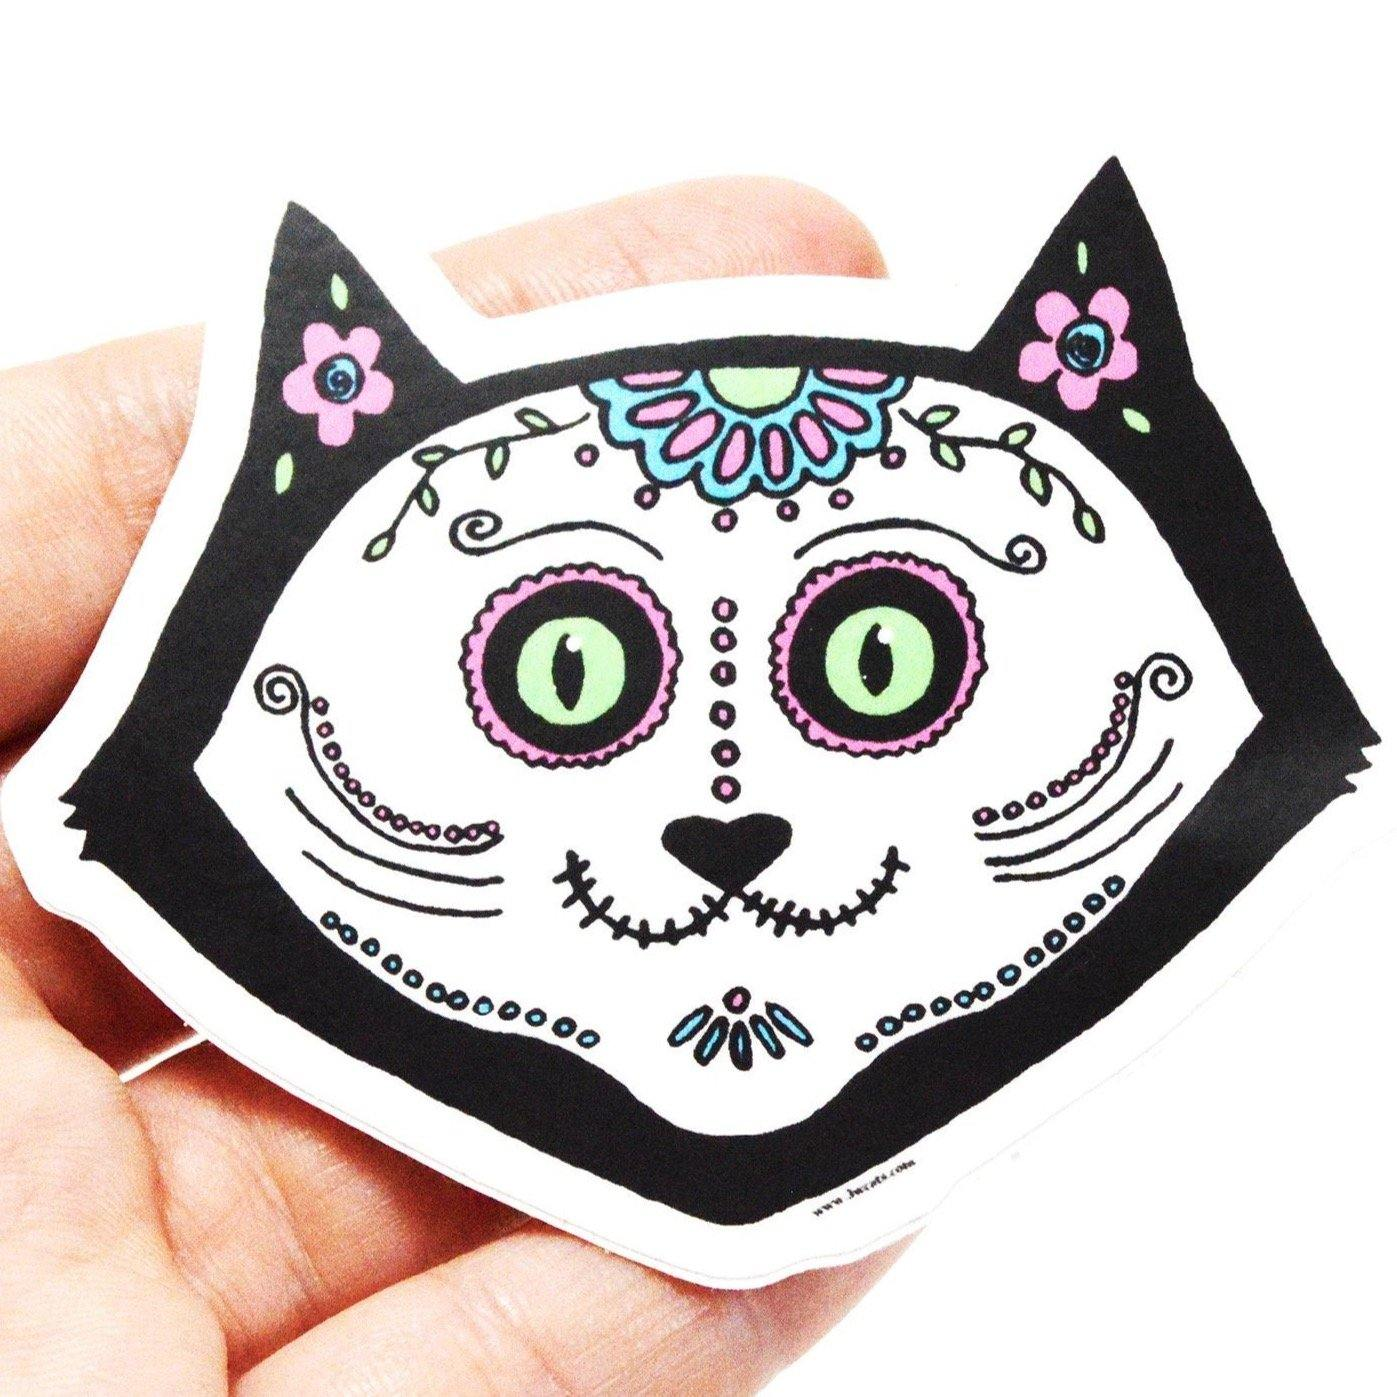 Cat Skull Vinyl Sticker - 3 W cats